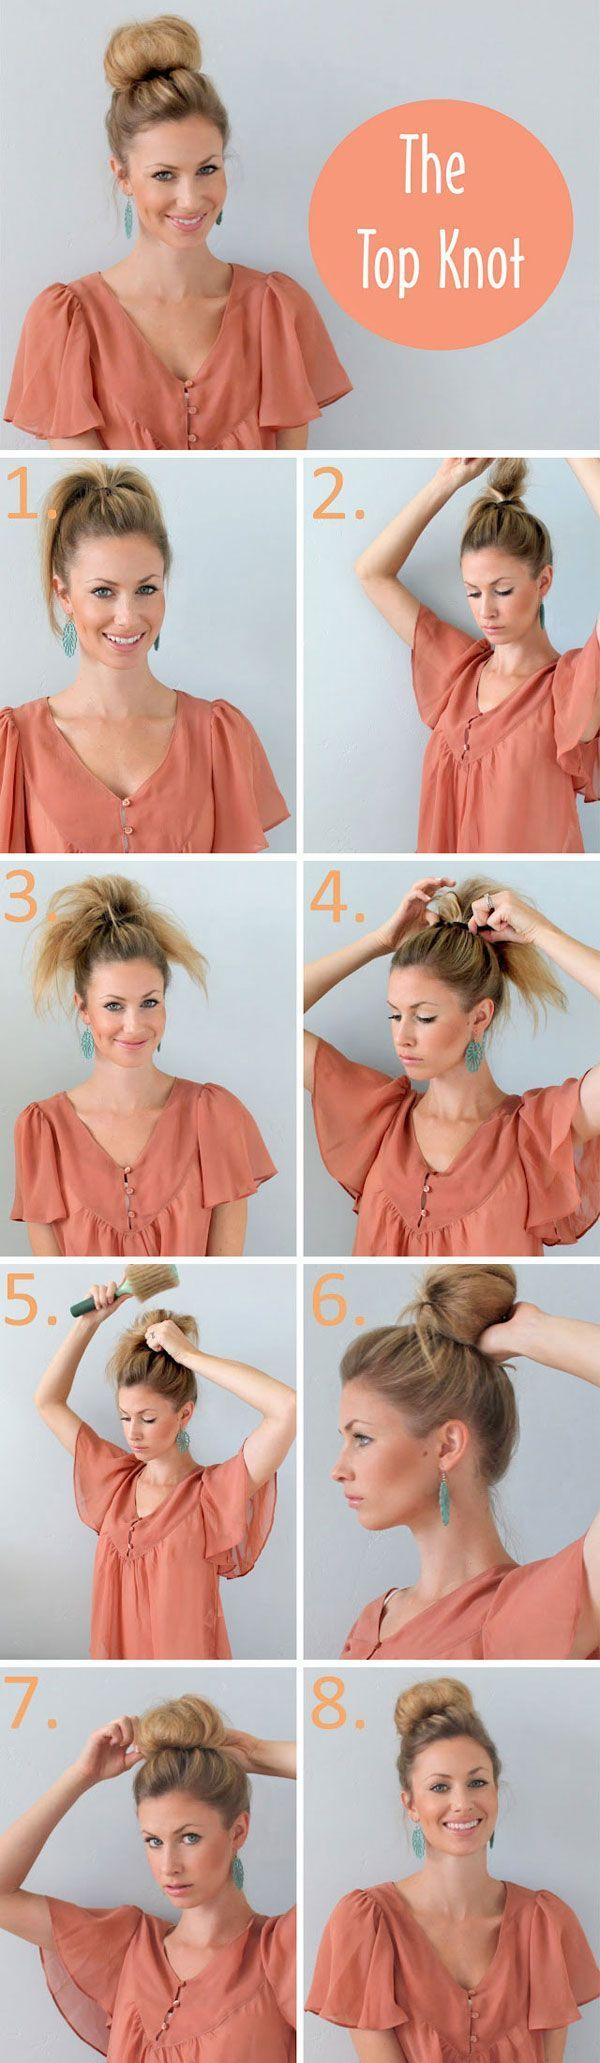 Top knot bun hair tutorial she katie ponytail bangs and tutorials